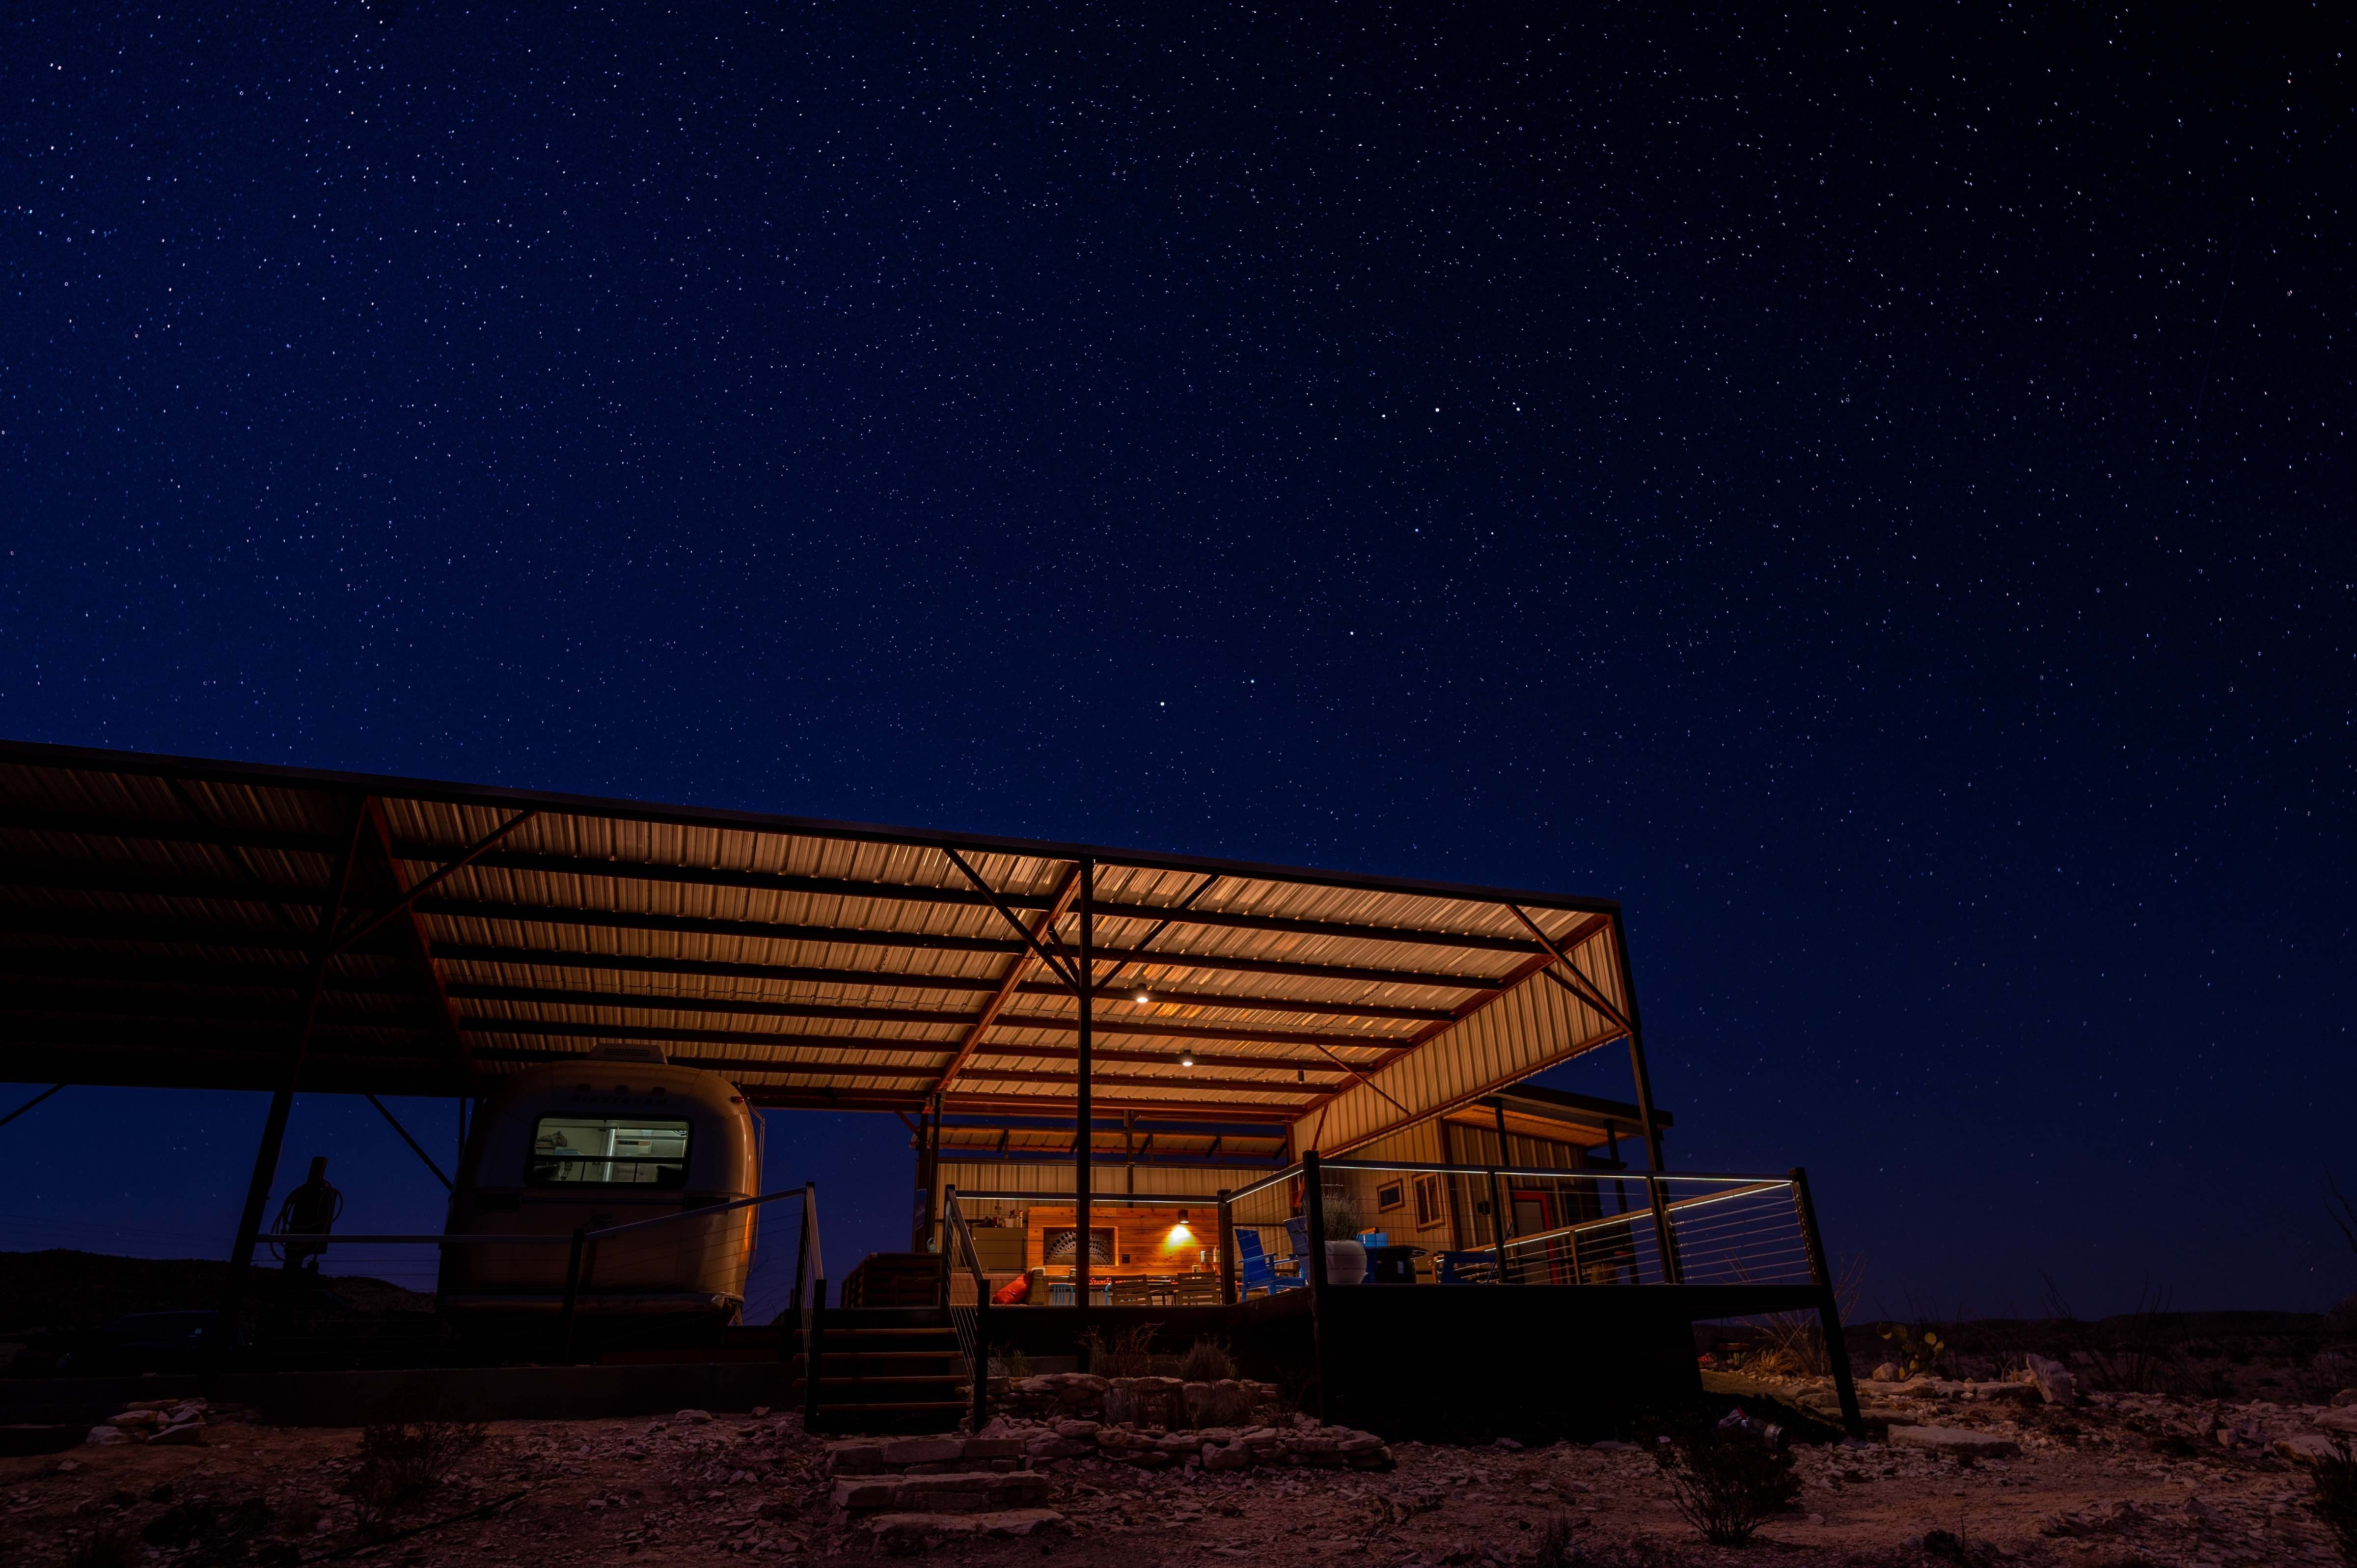 Big Bend Stargazer trailer under awning with nigh-sky friendly lights in Terlingua, Texas. photo by Stephen Hummel / McDonald Observatory.